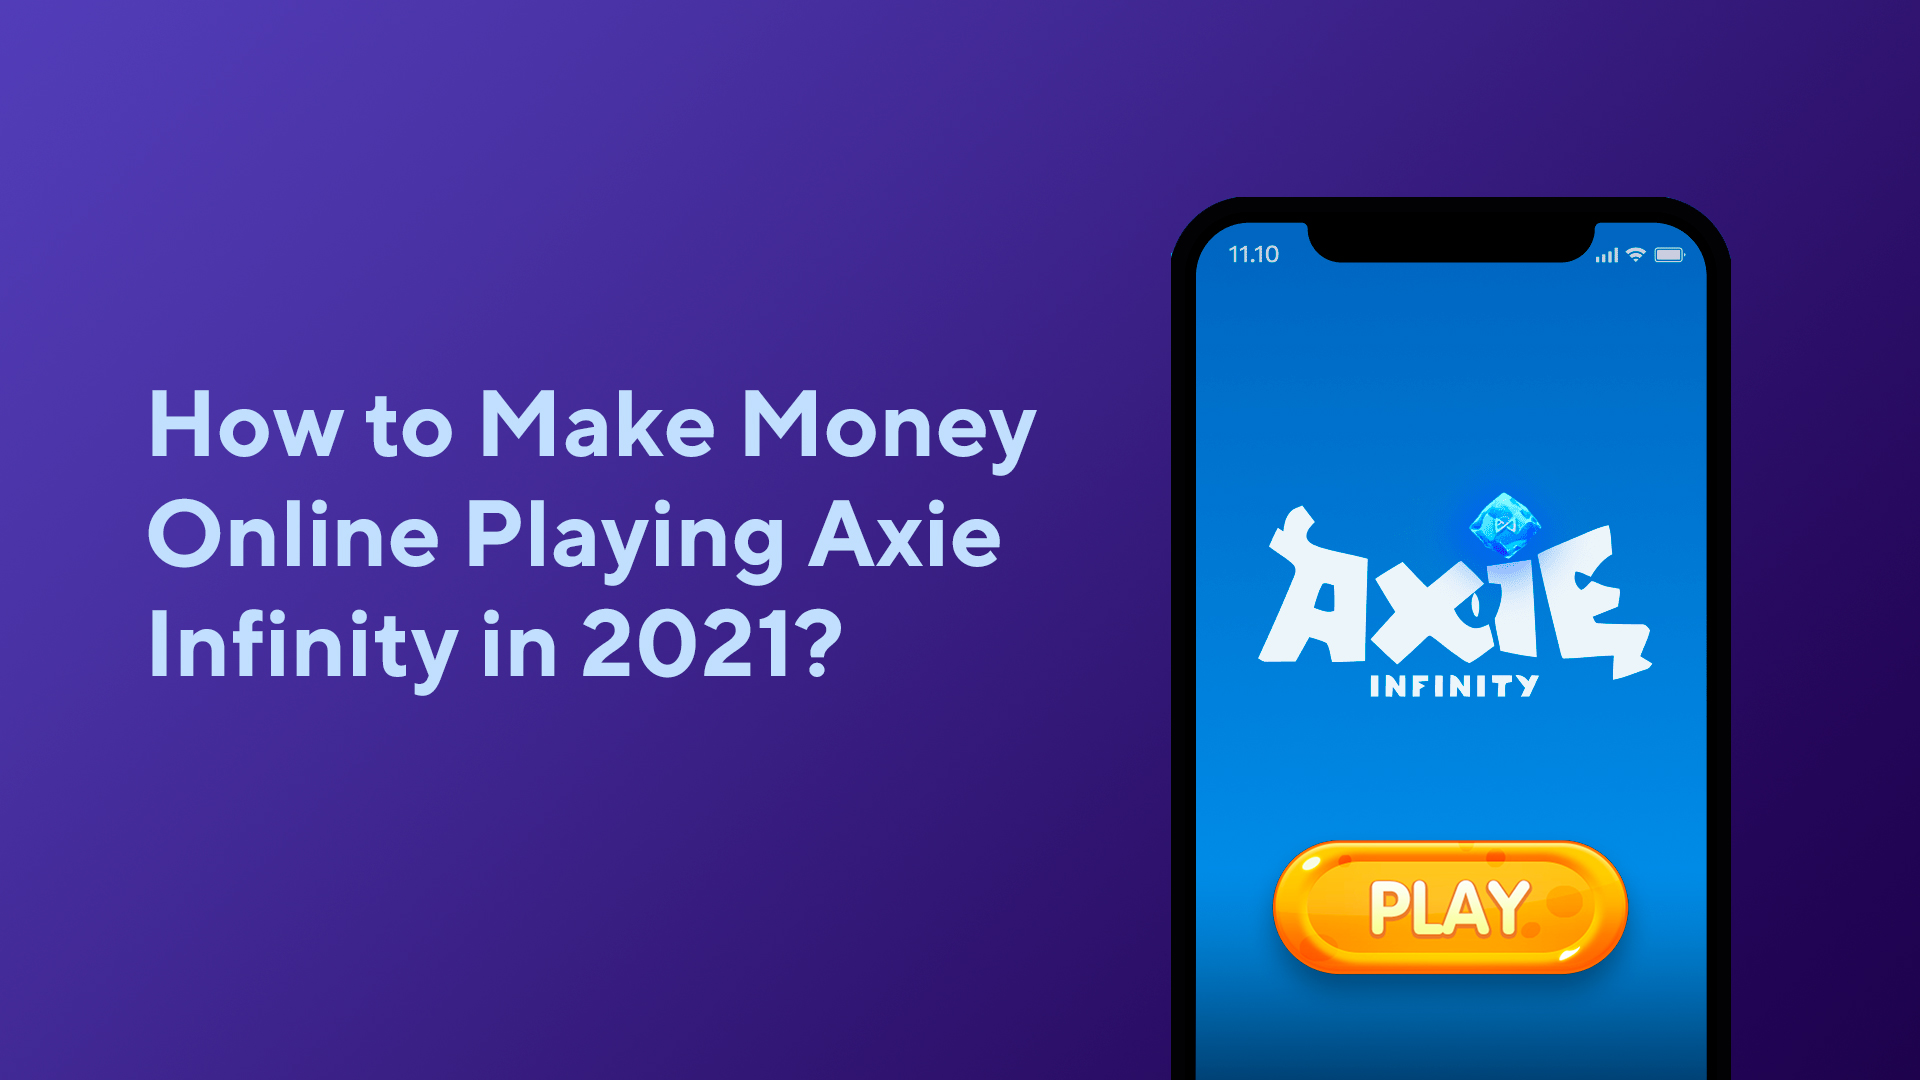 How to Make Money Online Playing Axie Infinity in 2021?